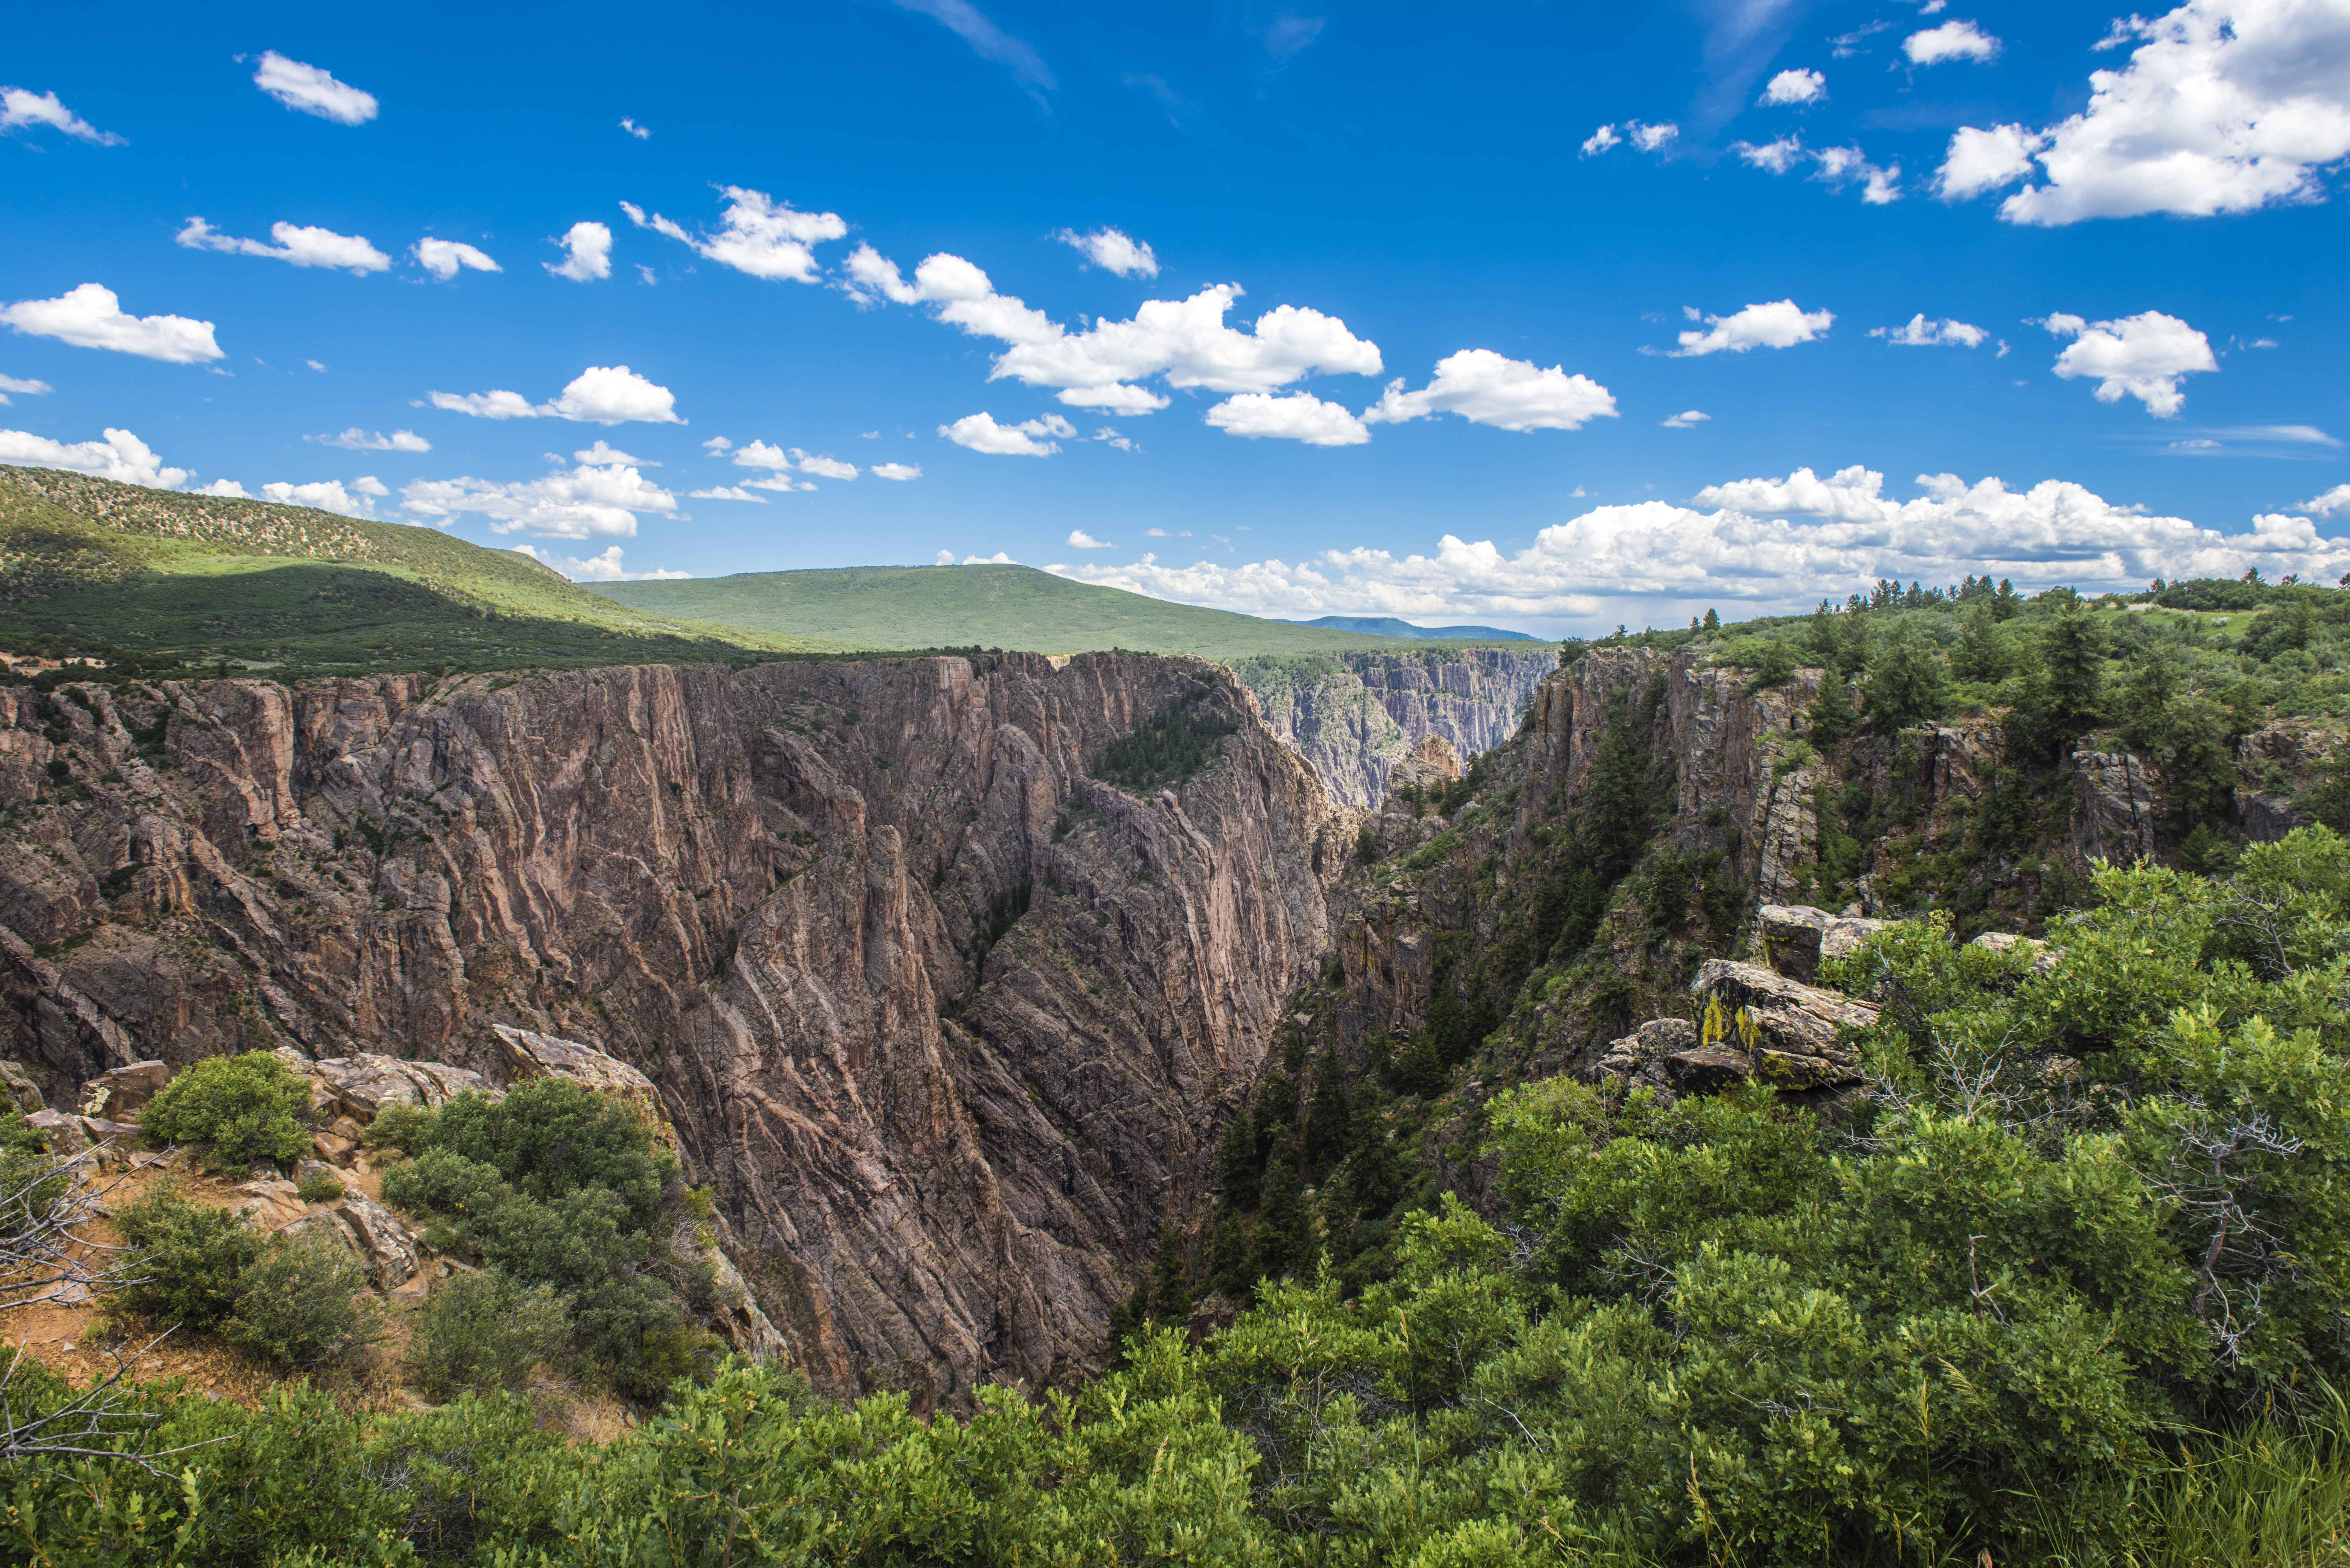 How to Spend a Day in the Black Canyon of the Gunnison